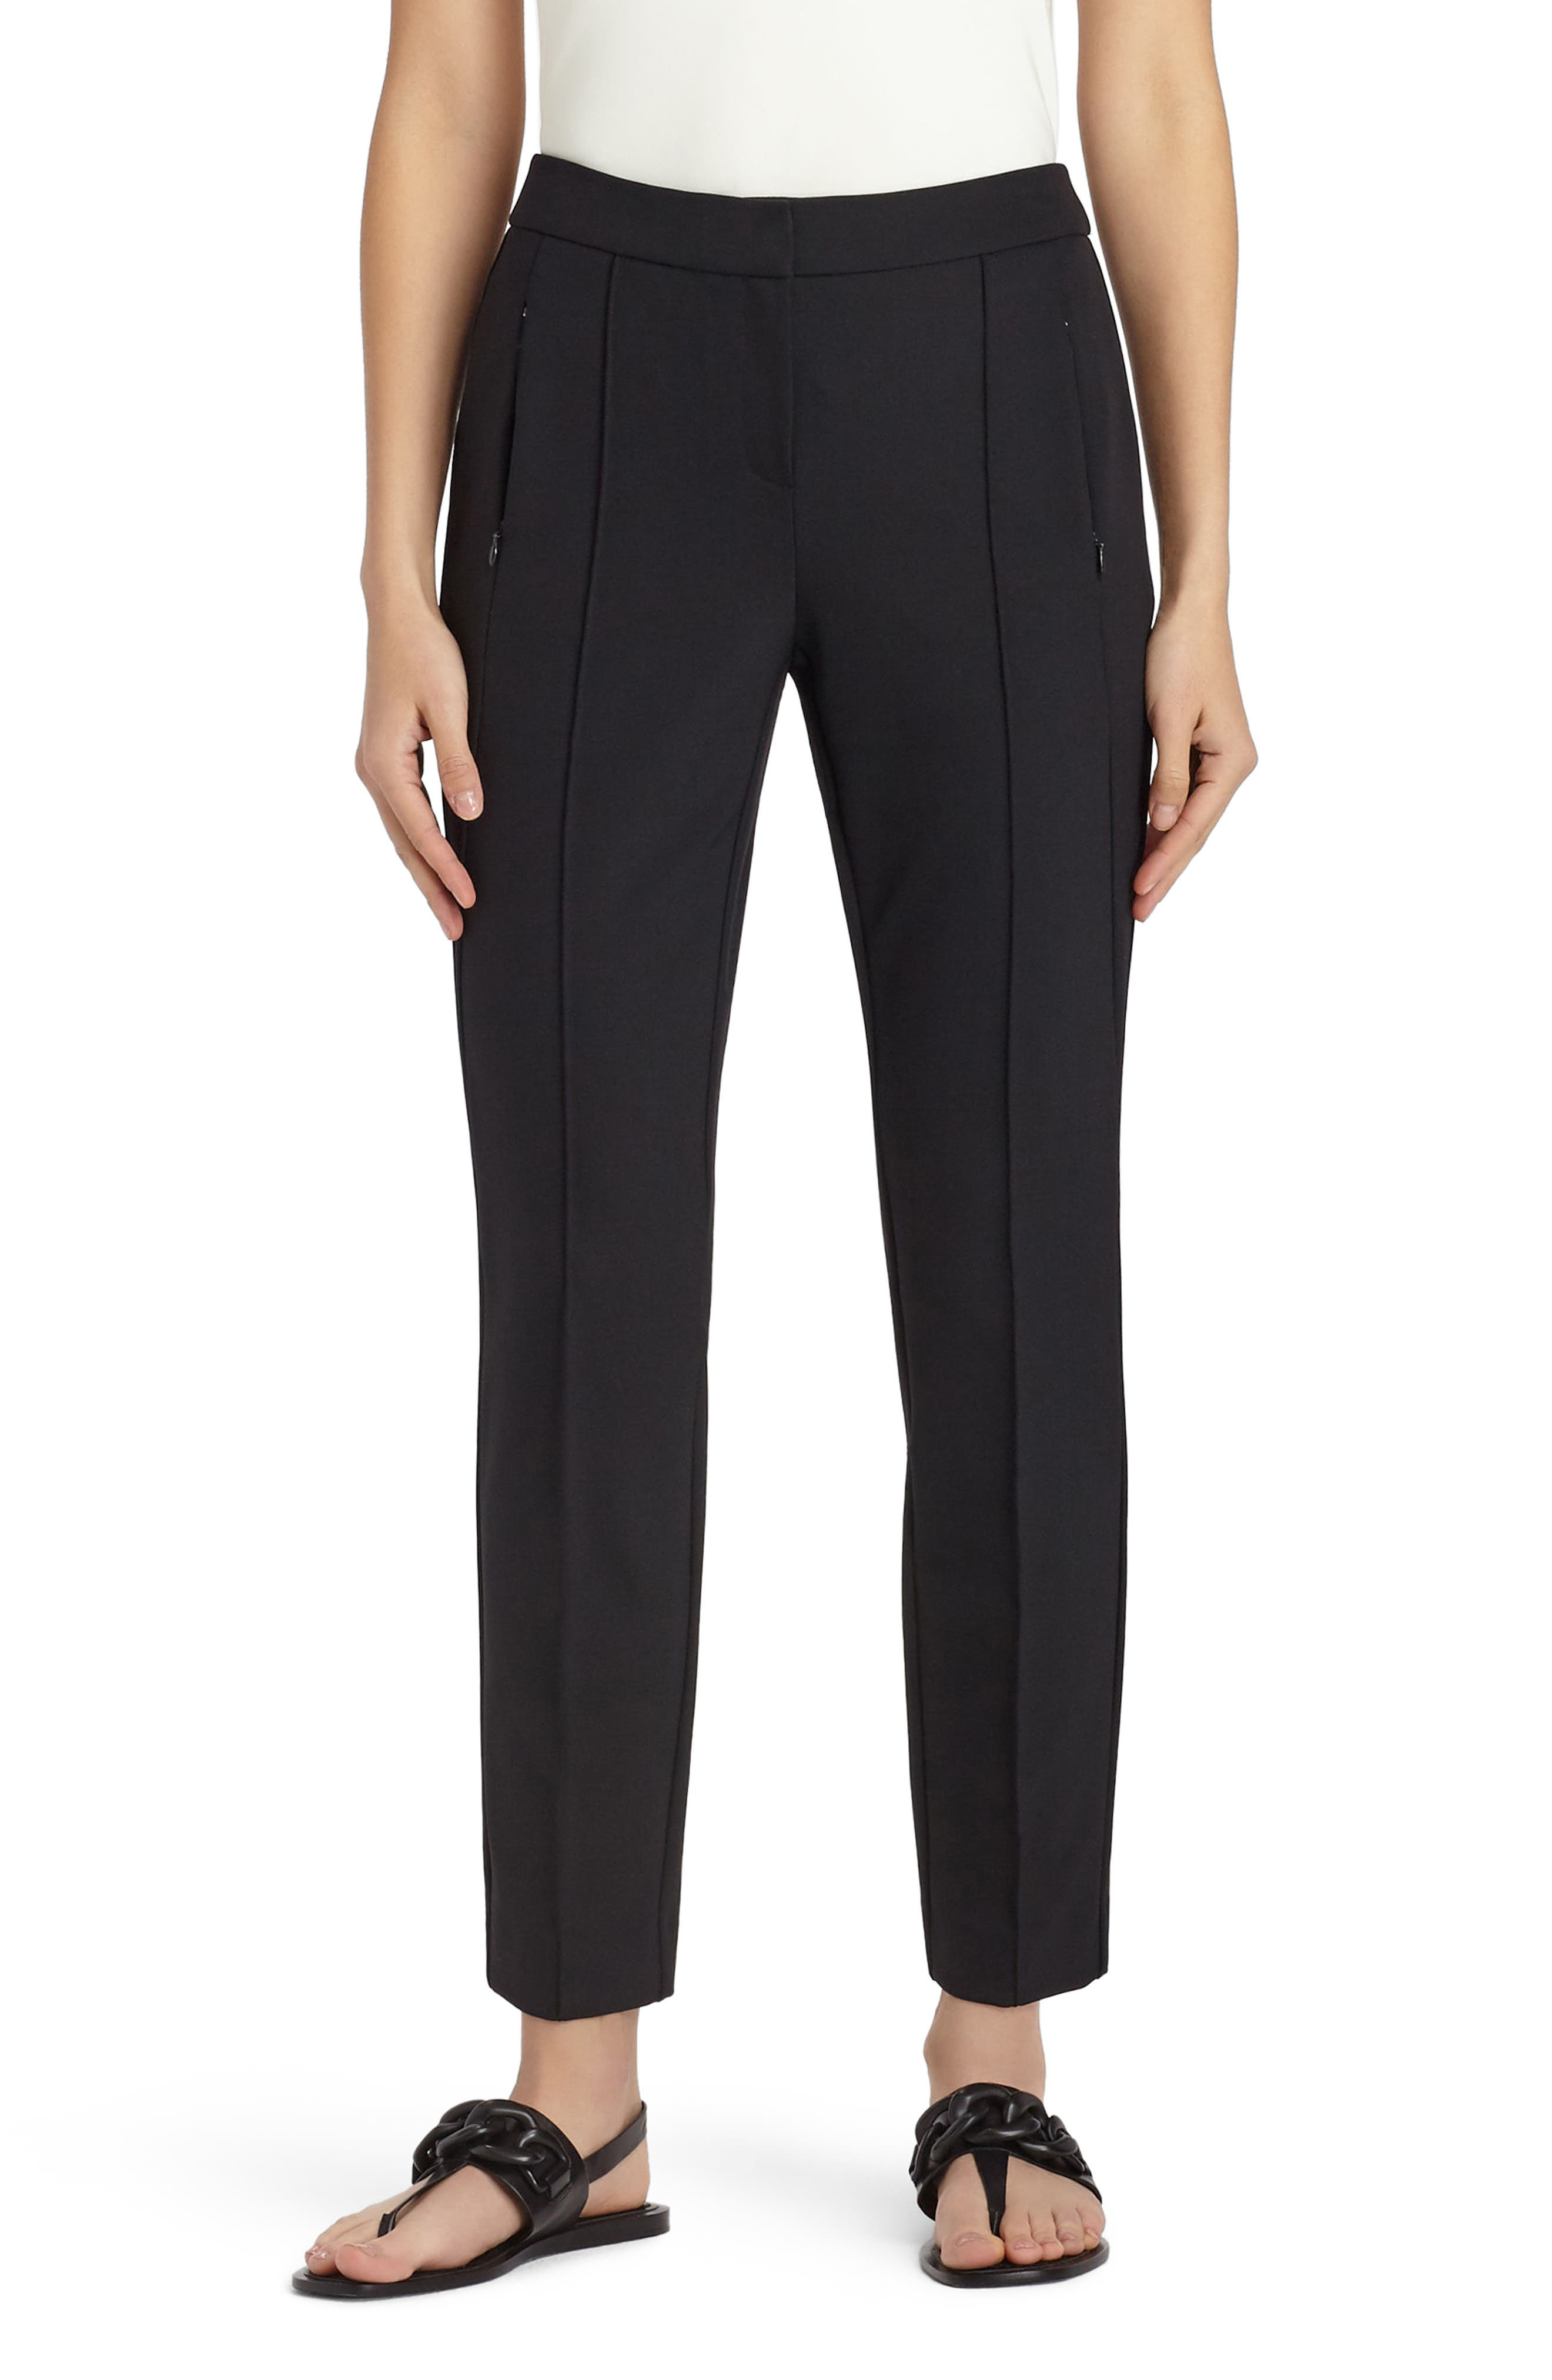 Orchard Pants,                         Main,                         color, Black